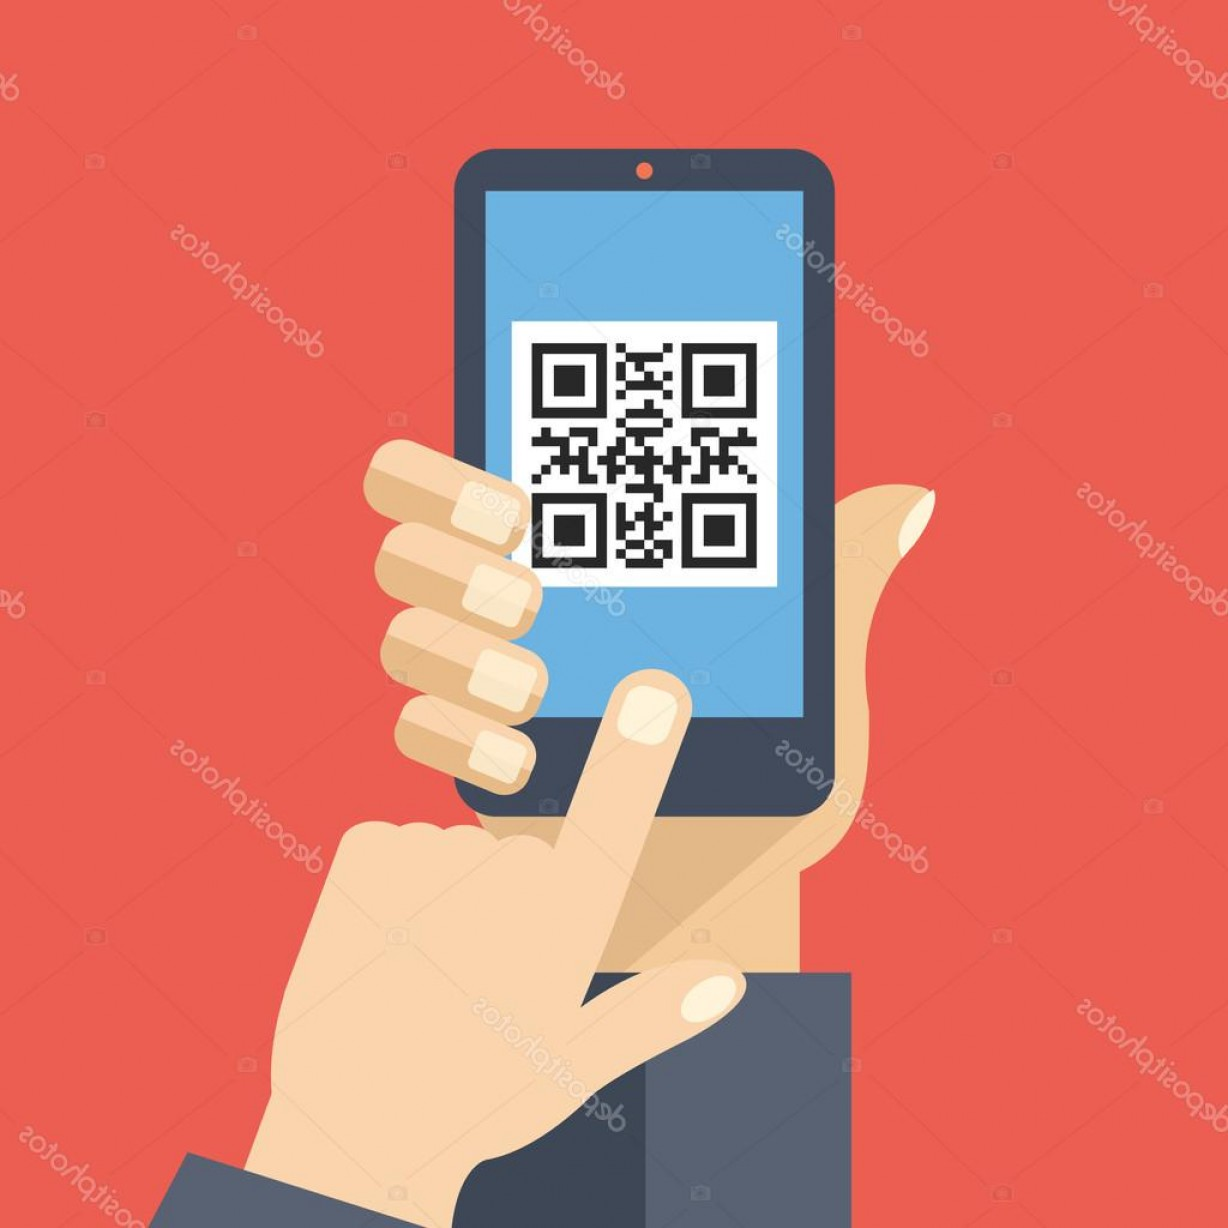 QR Mobile Phone Vector: Stock Illustration Qr Code Reader App On